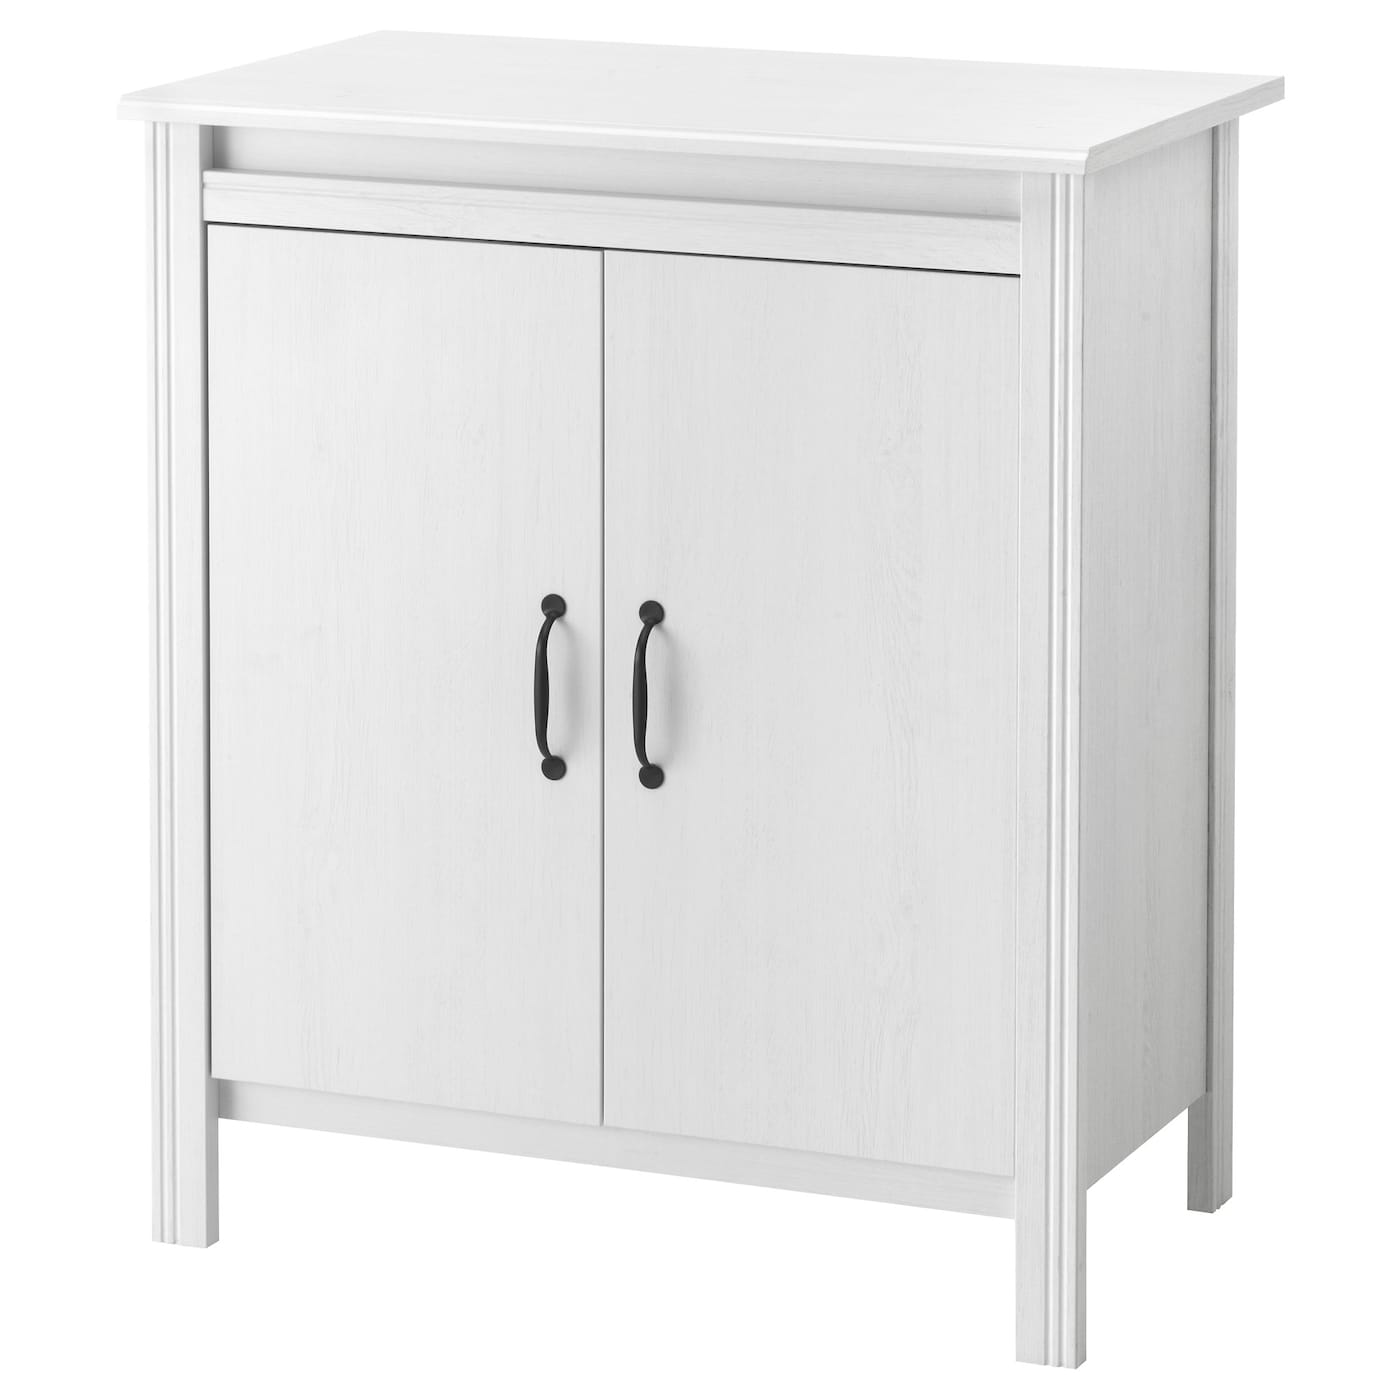 Brusali cabinet with doors white 80x93 cm ikea for Sideboard 50 cm hoch